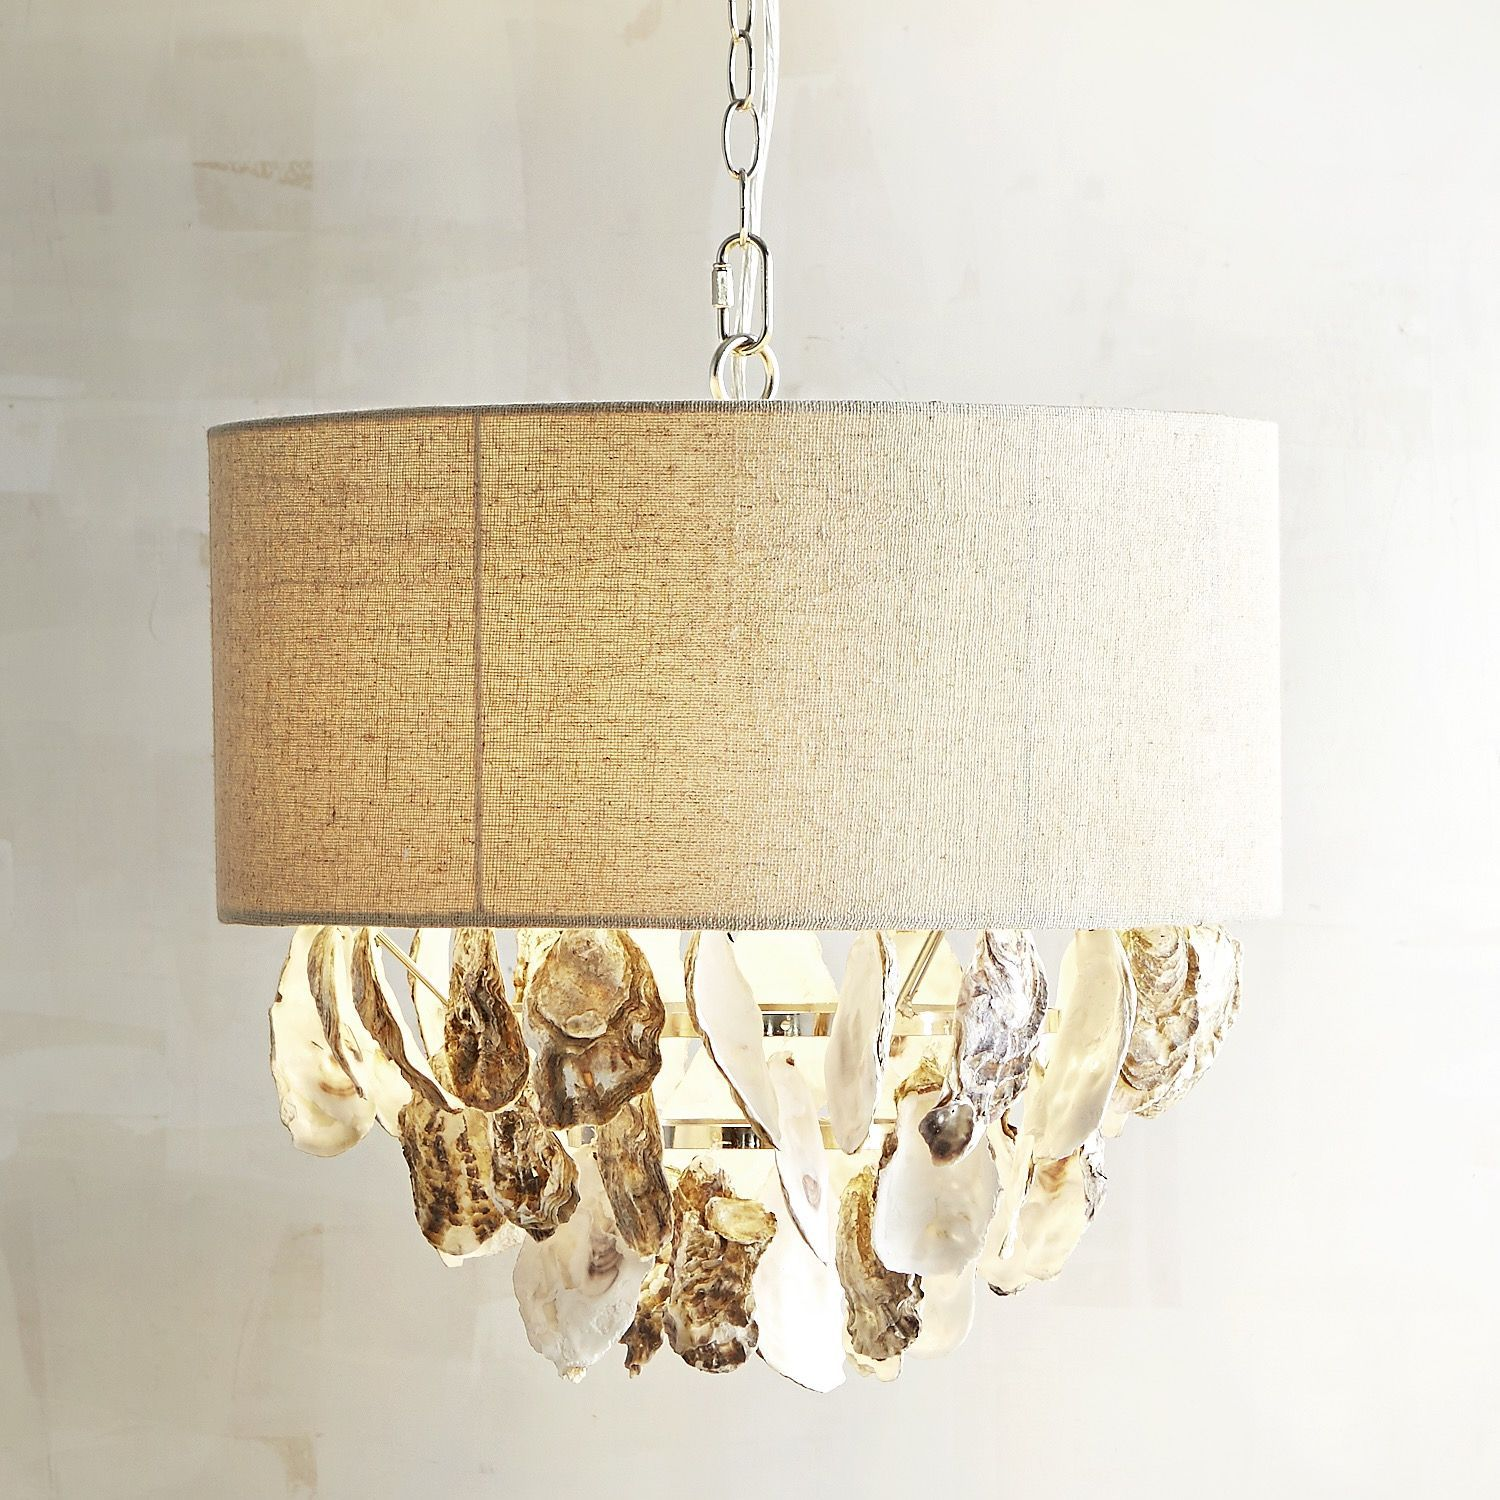 Oyster shell pendant light natural oyster shells pendant lighting oyster shell pendant light aloadofball Image collections